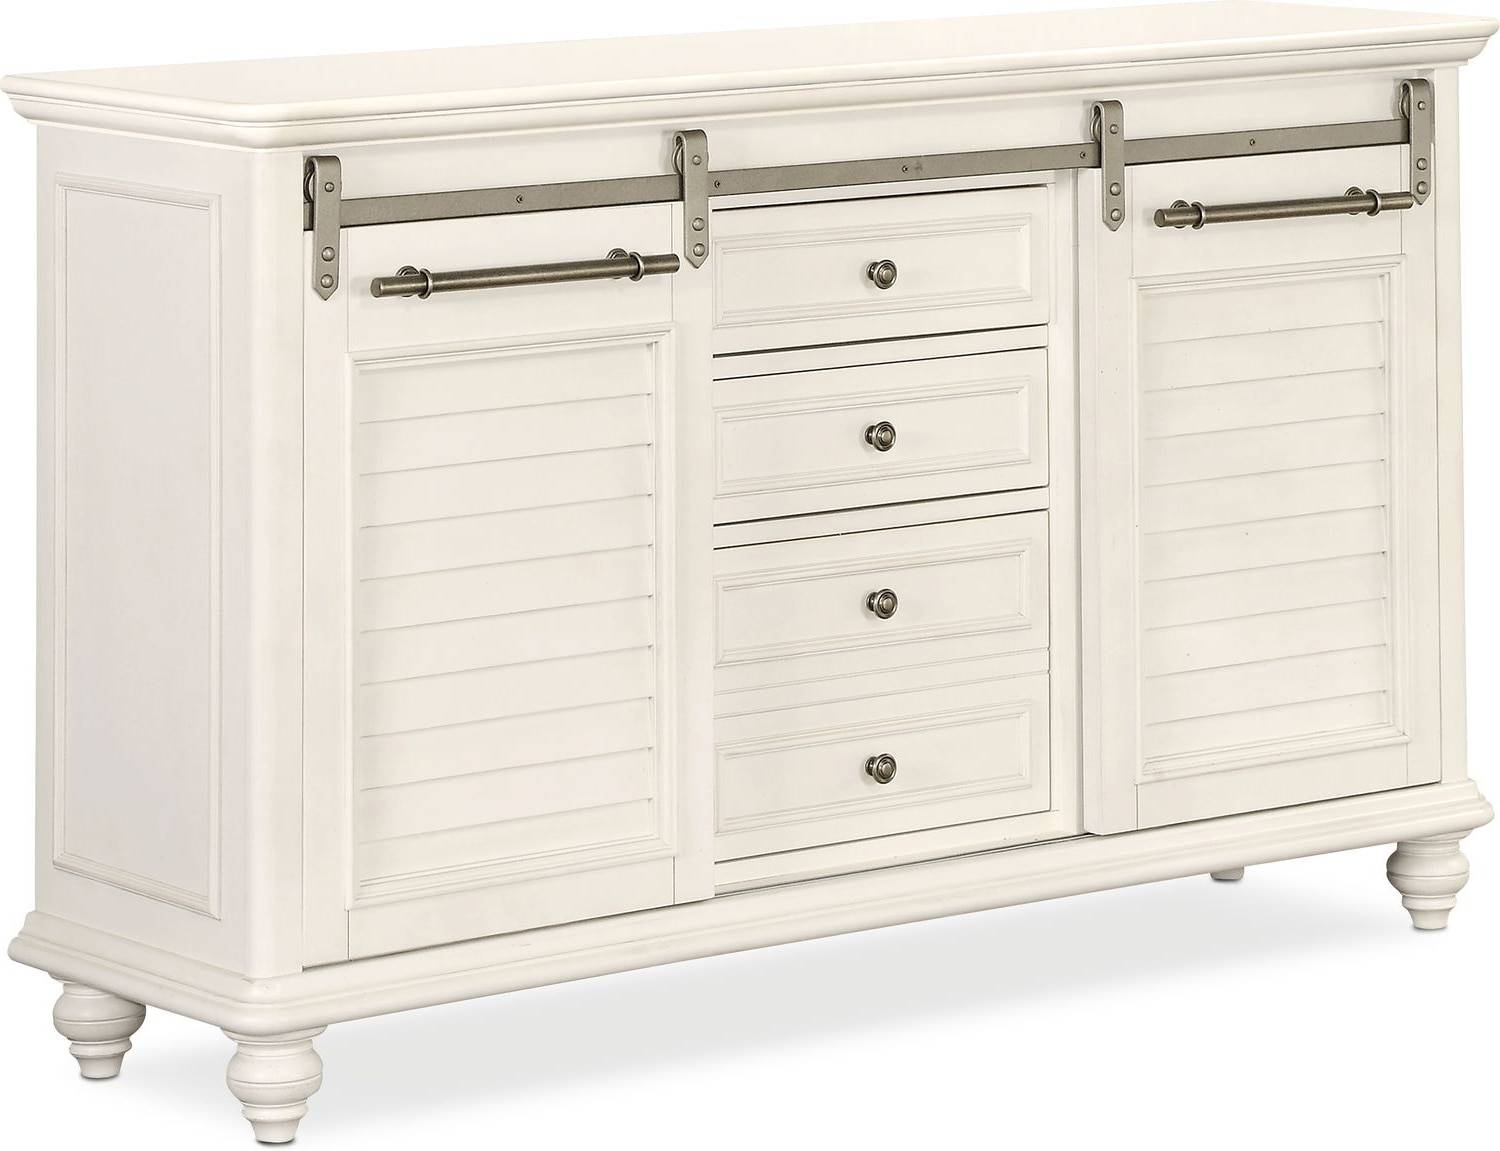 Buffet & Sideboard Cabinets | Value City Furniture intended for Small White Sideboards (Image 3 of 30)